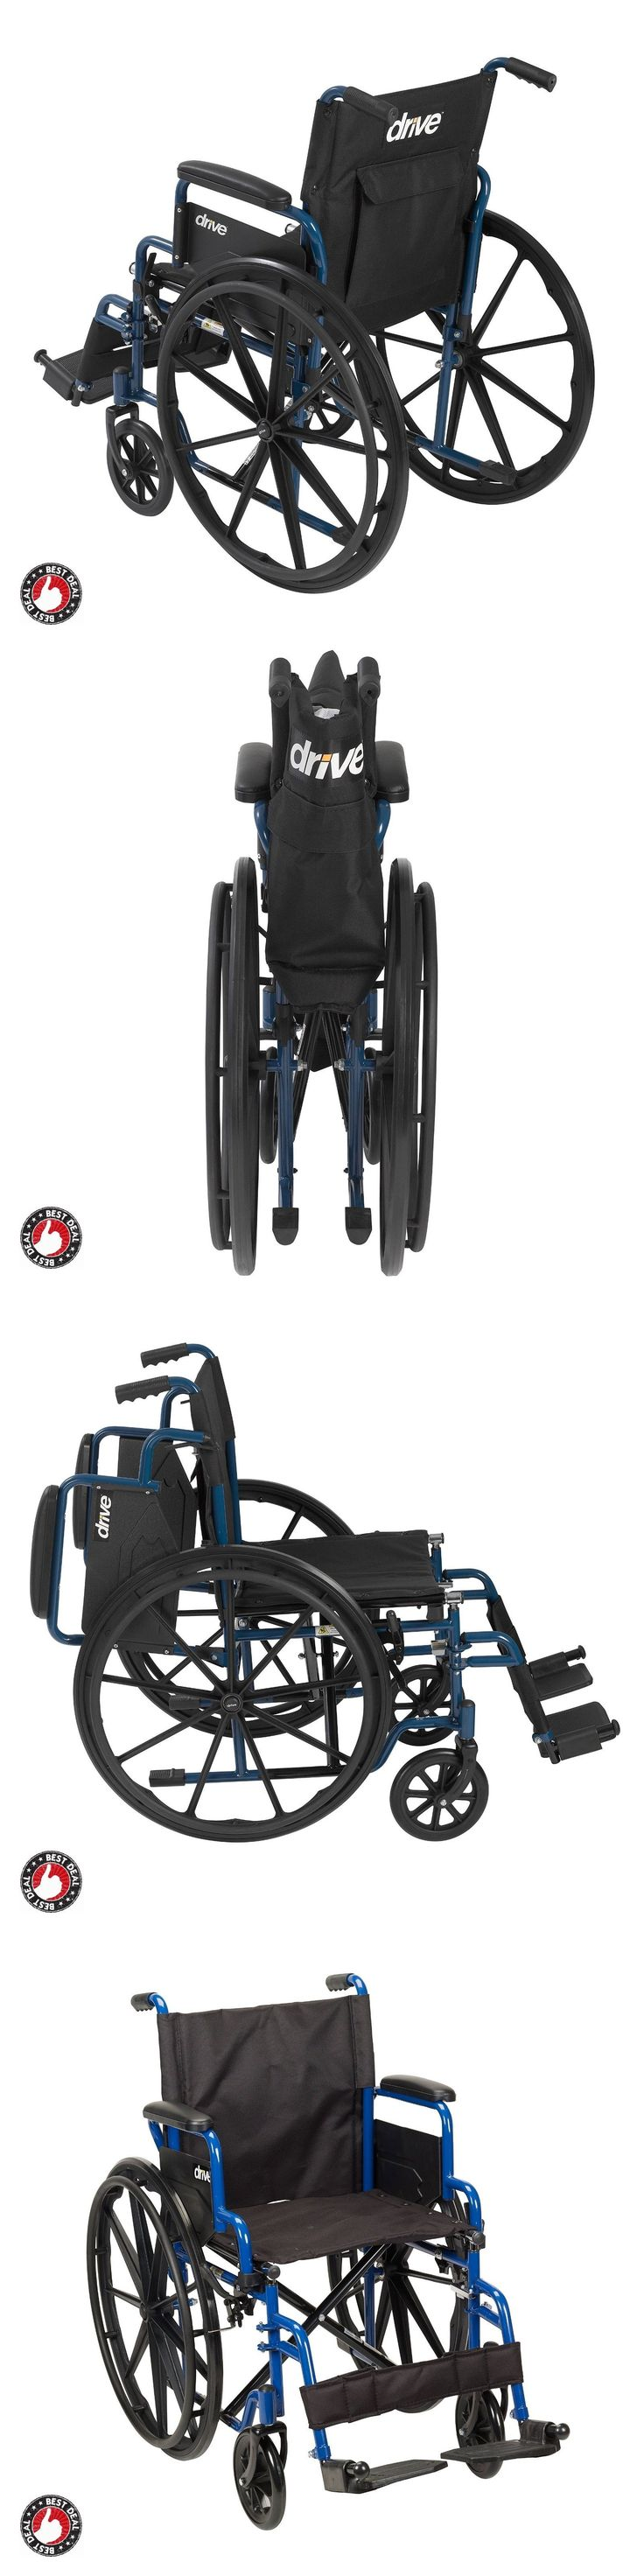 Electric bike adaption for wheel chair youtube - Wheelchairs Lightweight Folding Wheelchair For Seniors Adults Manual Disability Equipment Buy It Now